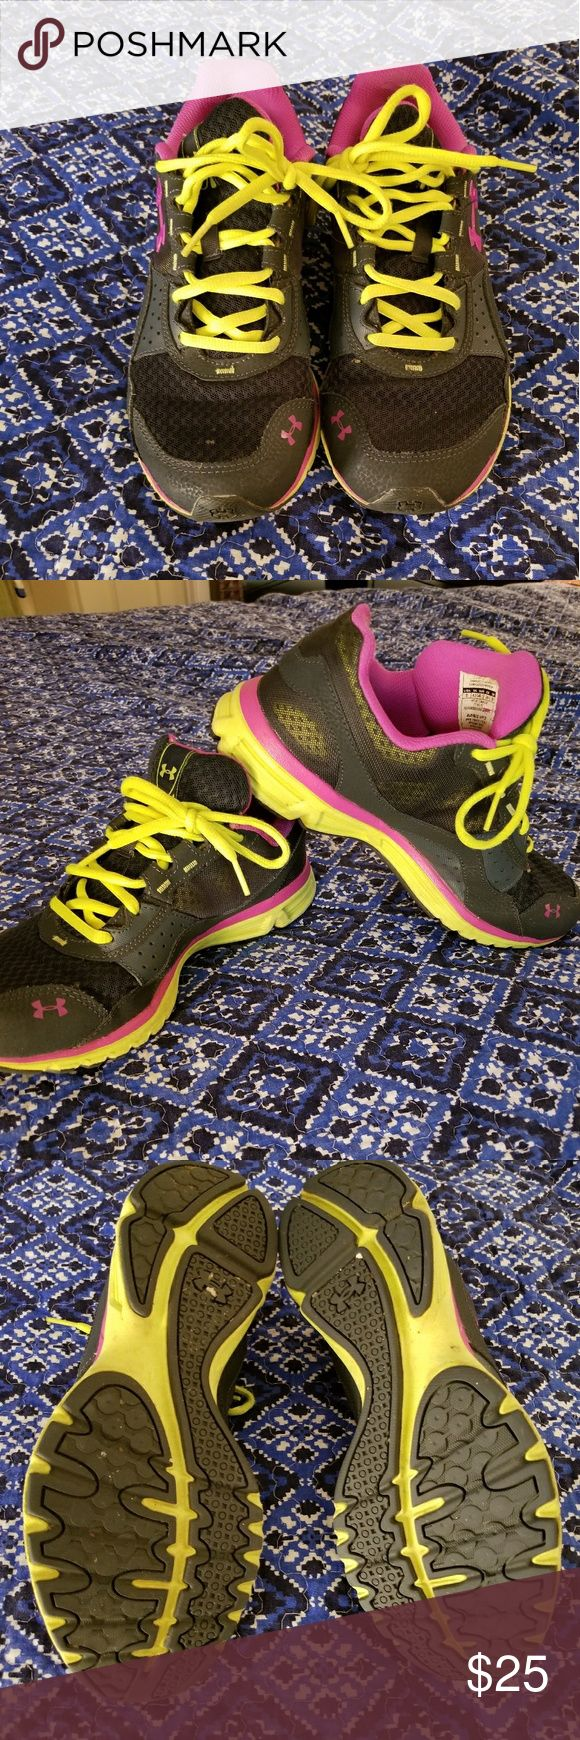 Size 9 women's under armour tennis shoes In like new condition, size 9 comfortable tennis shoes. Colors are pink, neon and black. Under Armour Shoes Athletic Shoes